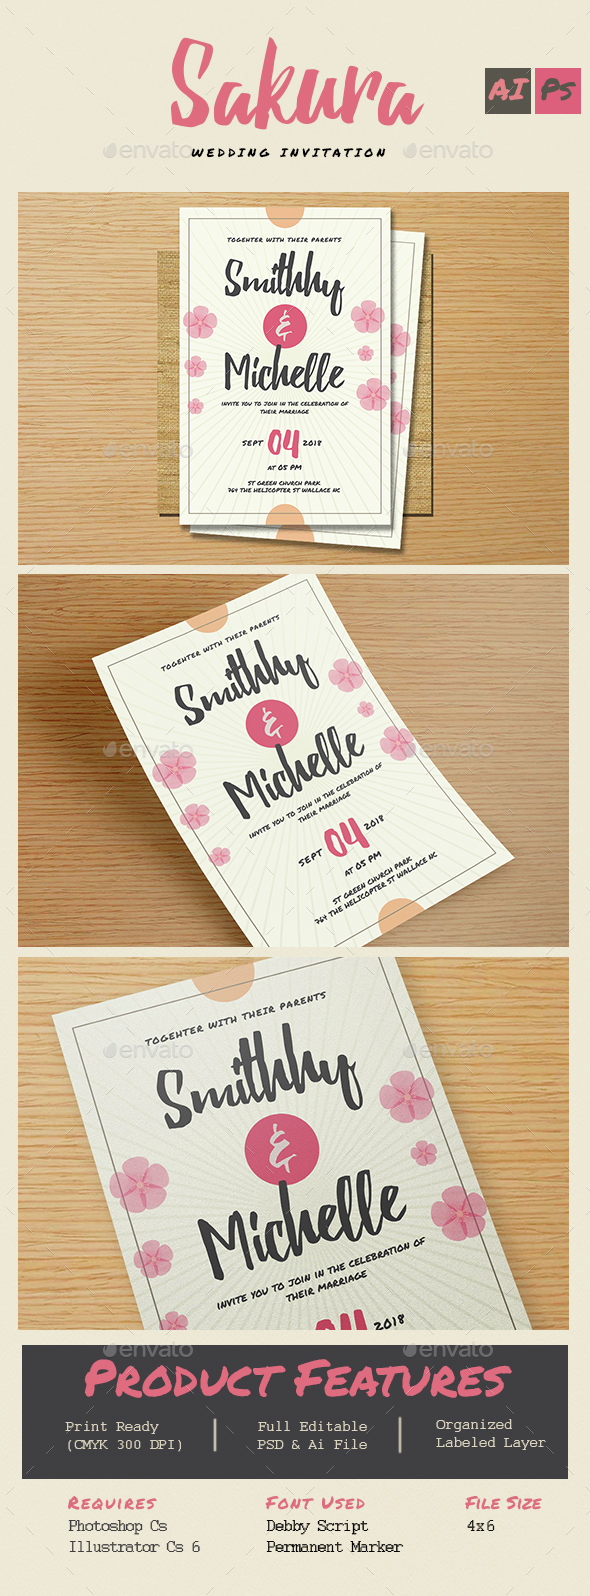 Sakura Wedding Flower Invitation - Weddings Cards & Invites